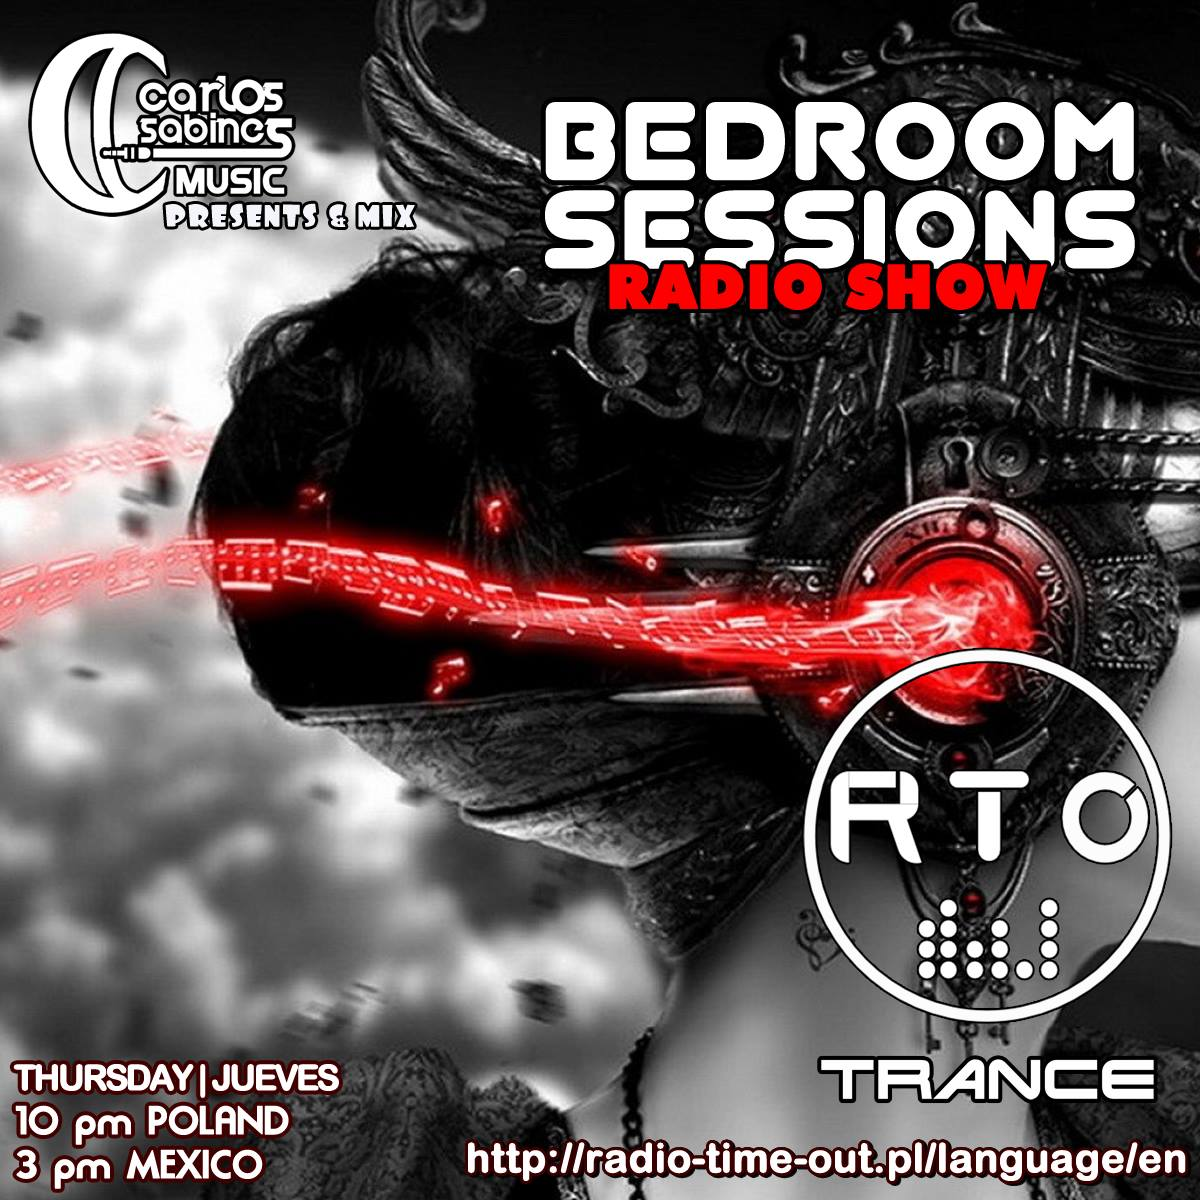 @carlossabinesDJ pres.  #BedroomSessionsRadioShow Broadcast from #Poland  Transmisión desde #Polonia  ▶️ http://radio-time-out.pl/language/en ➡️ 10 pm Poland ➡️ 3 pm #México  #RadioShow #Trance #TranceFamily #RT #DJLife #CarlosSabines